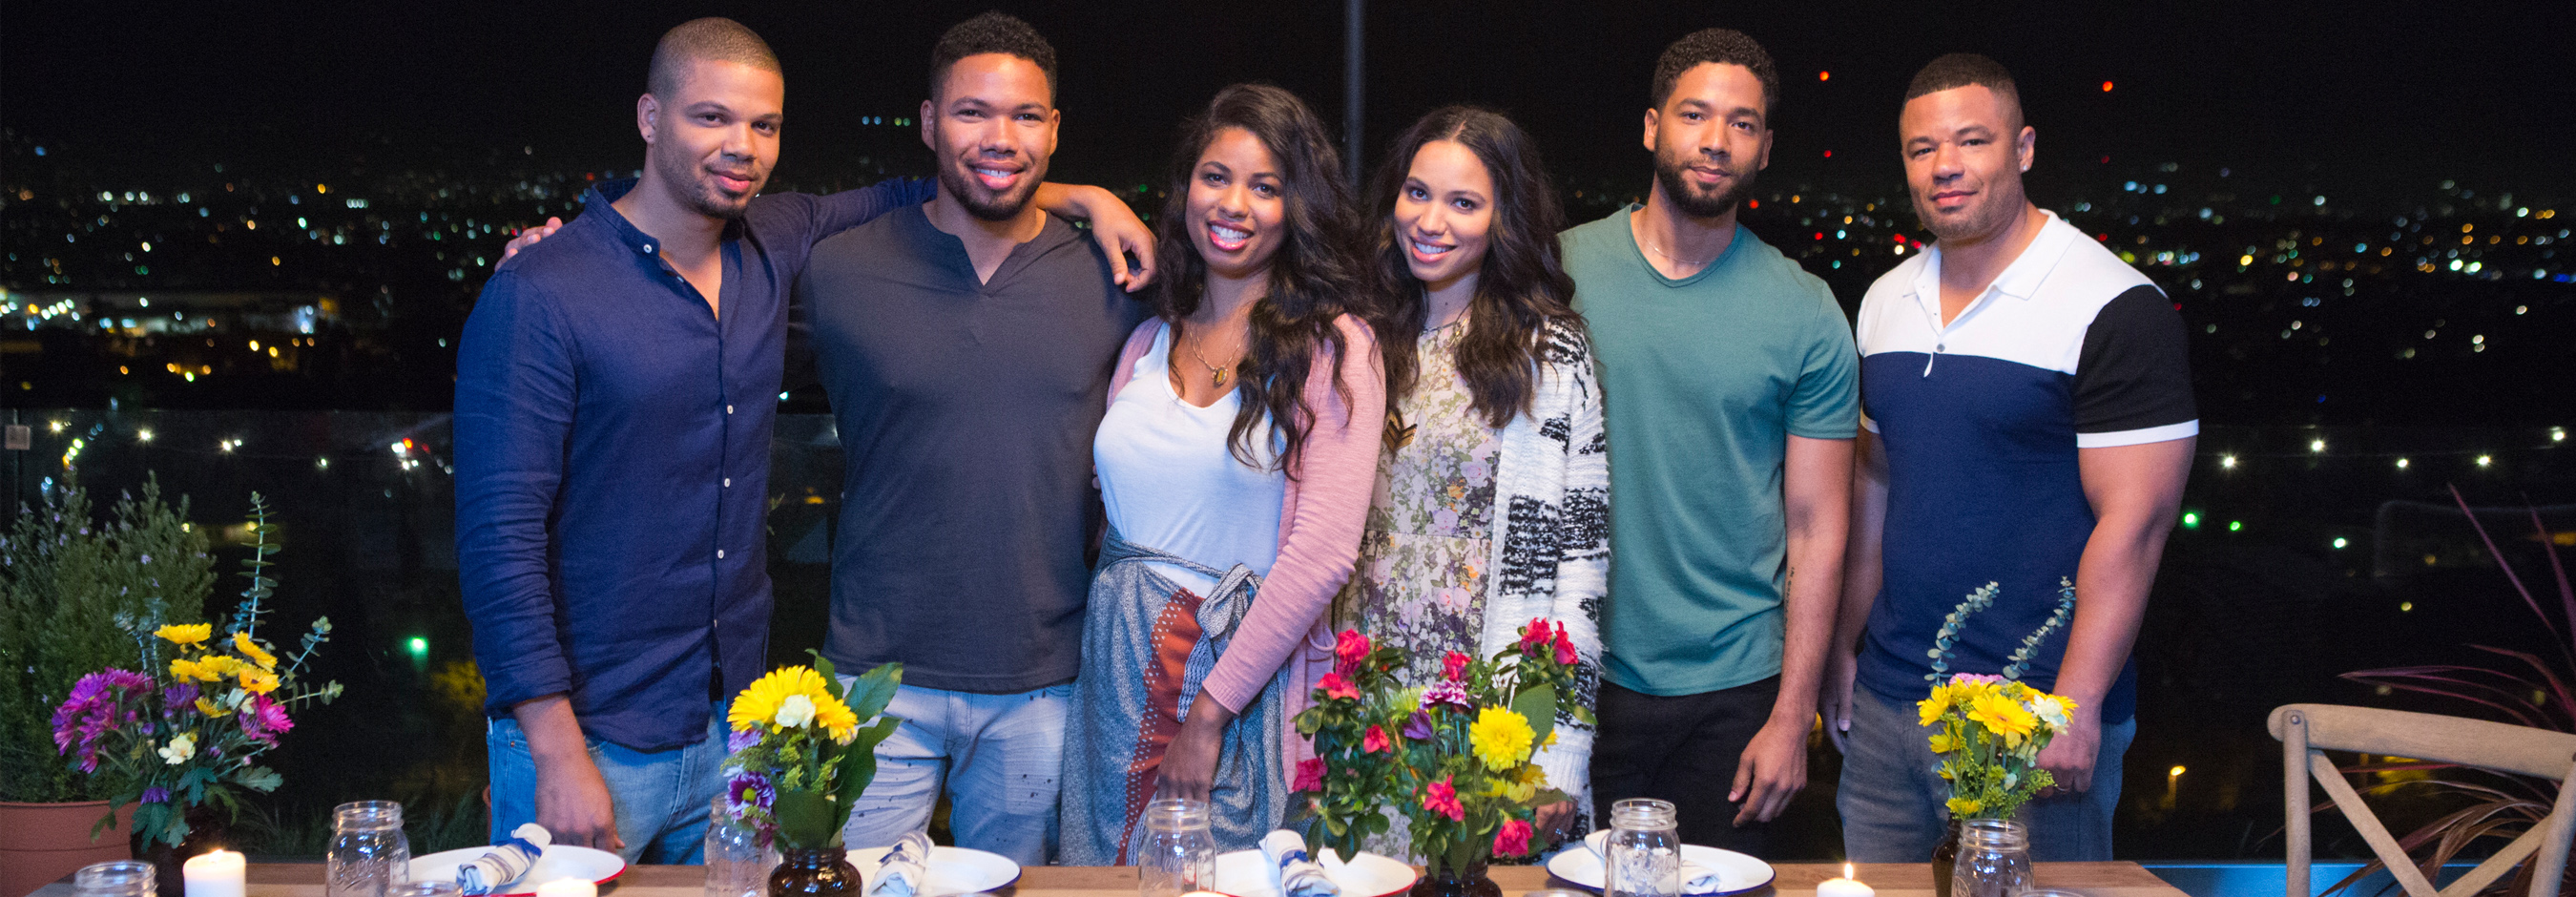 Multi Talented Smollett Family Serves Up Fun Food And Favorite Recipes In New Series Smollett Eats #tbt last year around january or february on the floor in my living room going through like the 15th edit of #thefamilytable. recipes in new series smollett eats